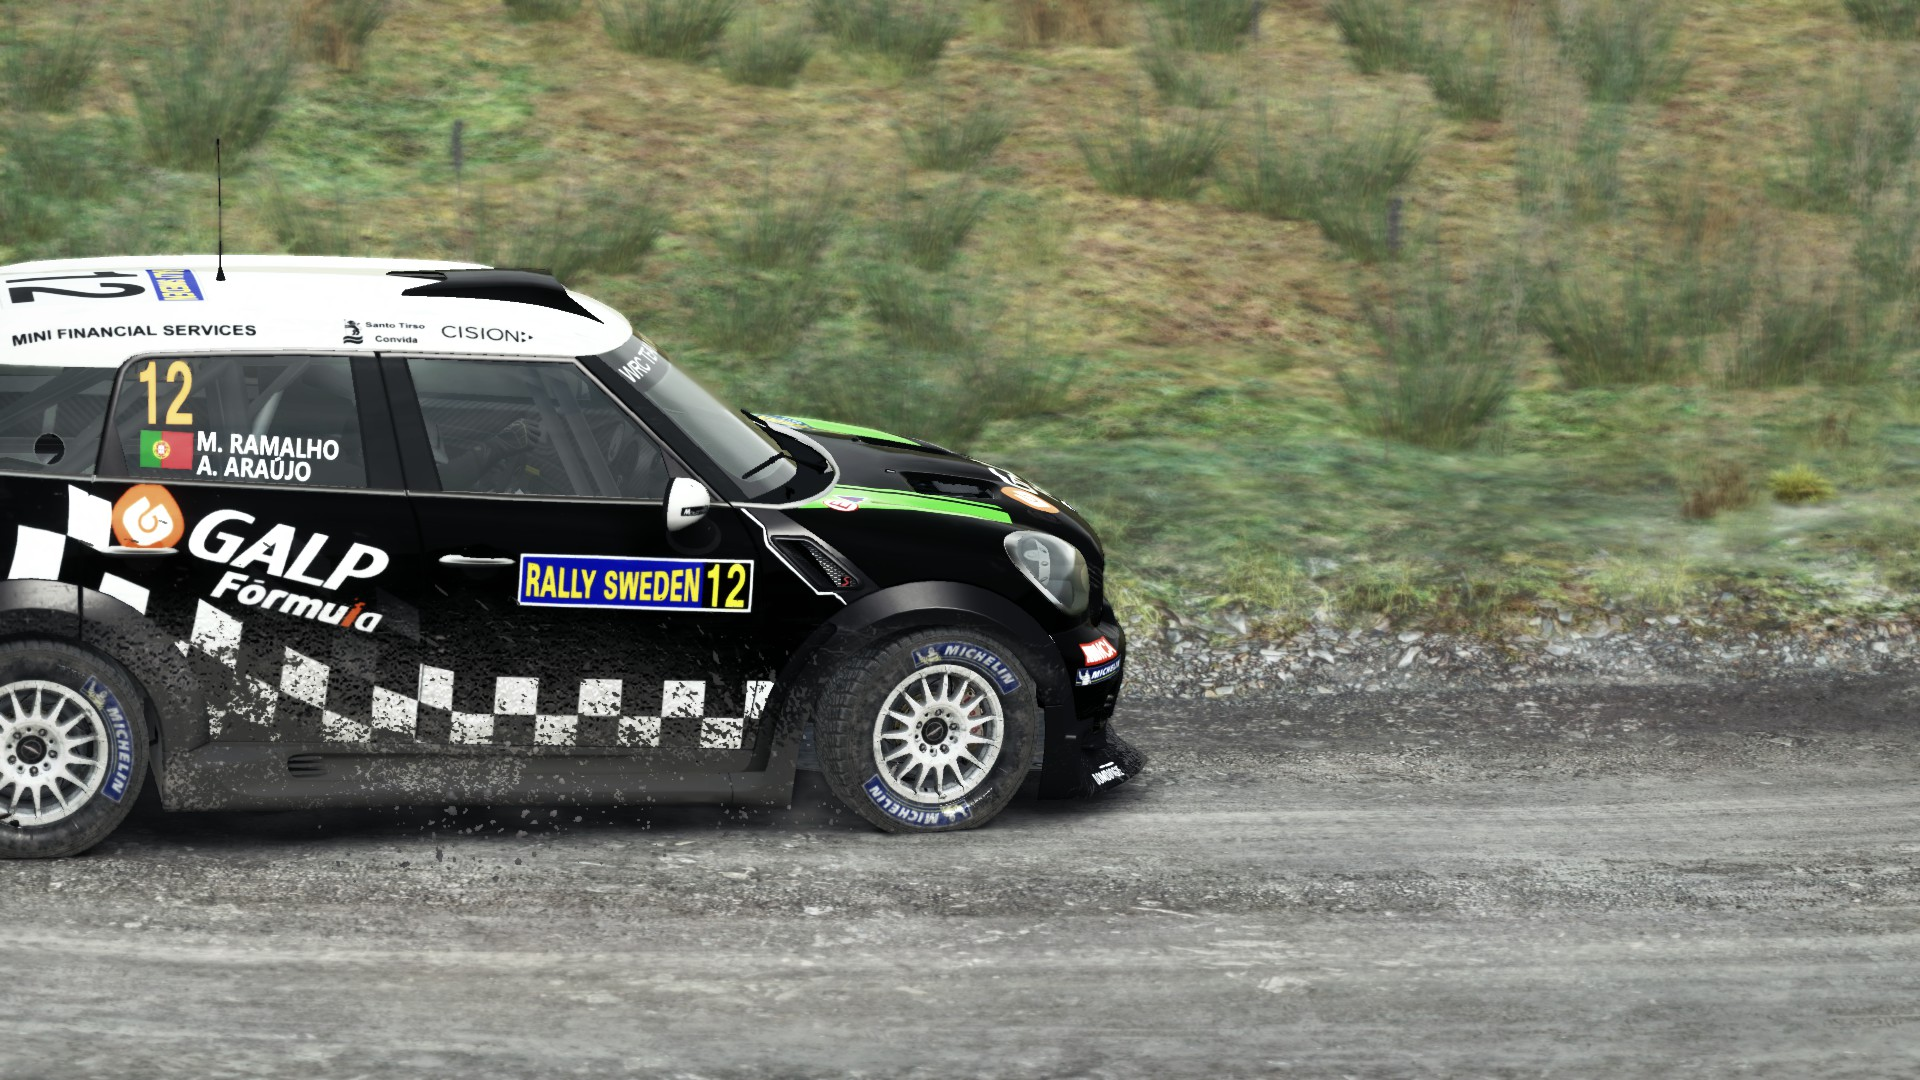 WRC TEAM MINI PORTUGAL Livery For MINI Countryman Rally - Wrc portugal 2016 map